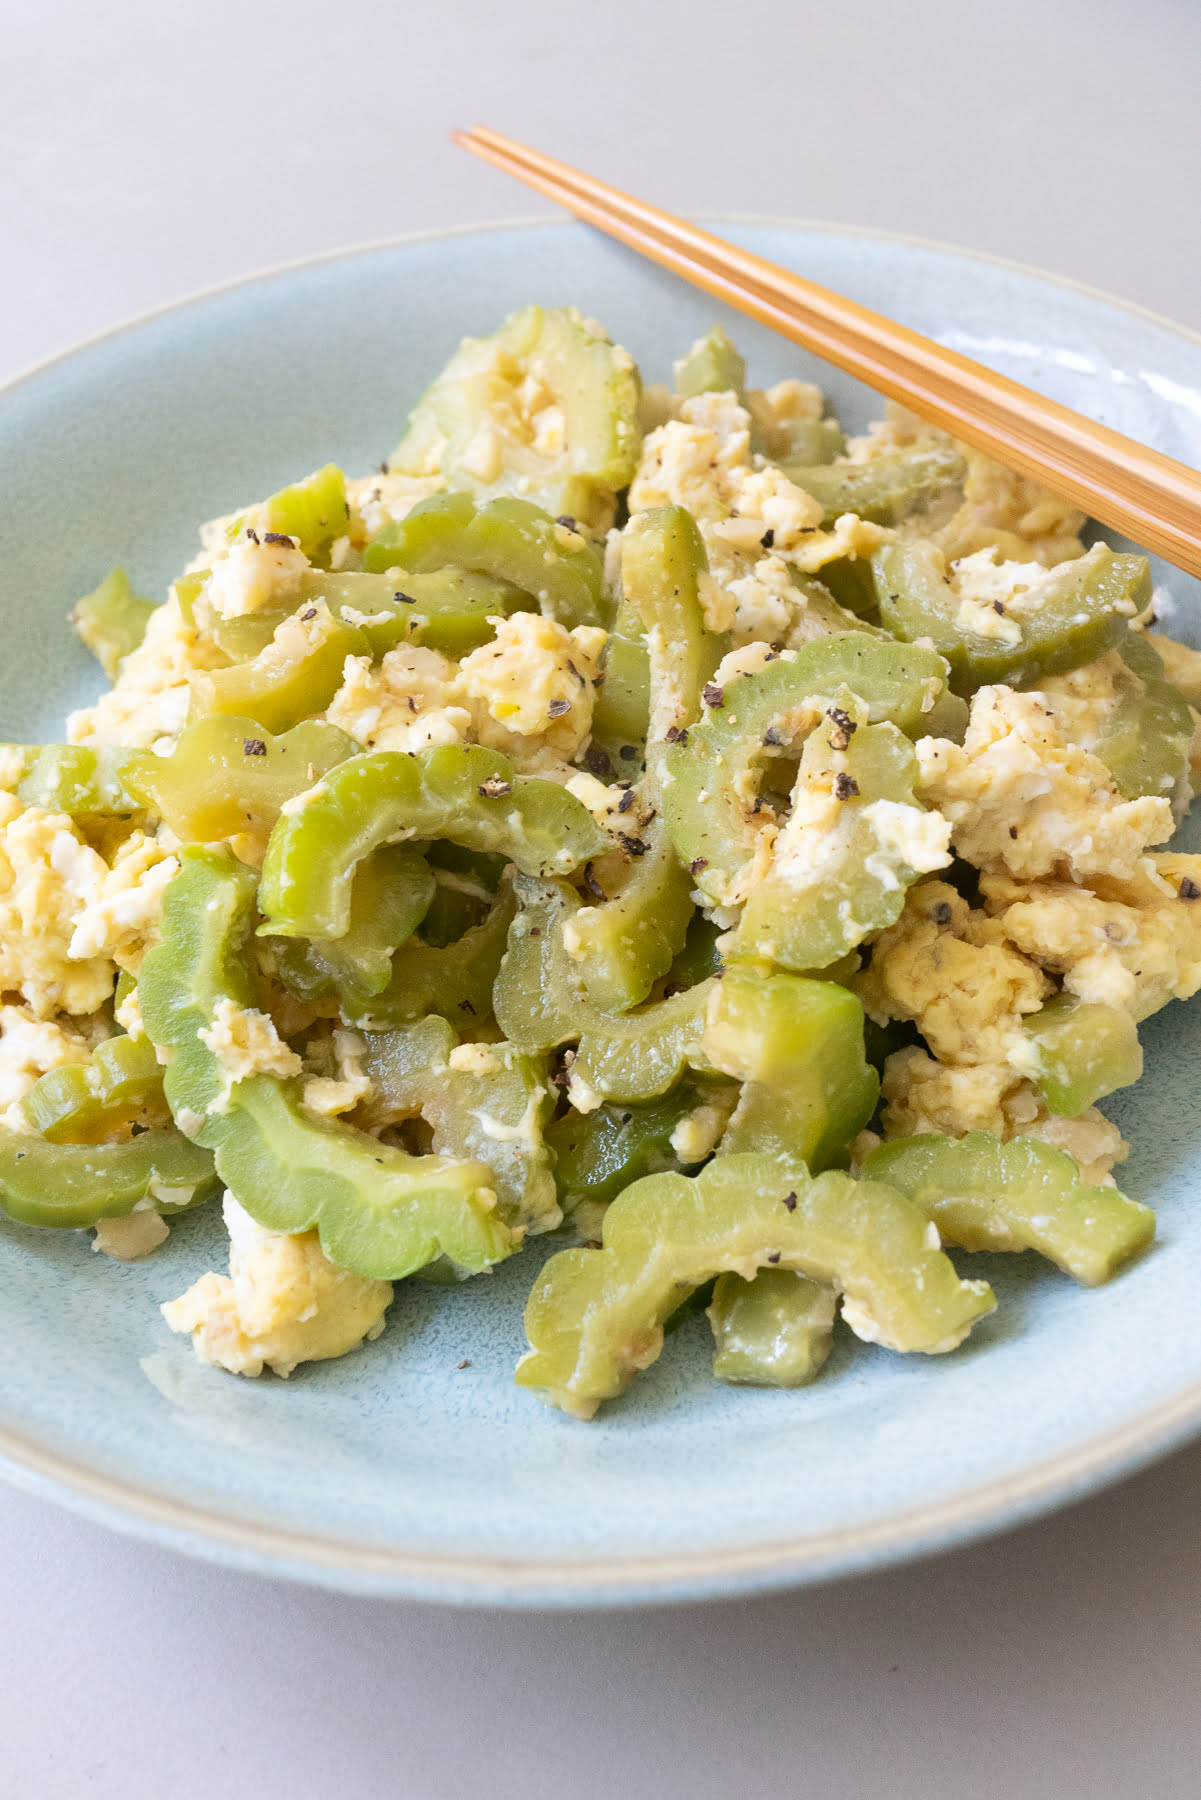 A plate of bitter melon with eggs stir fry.